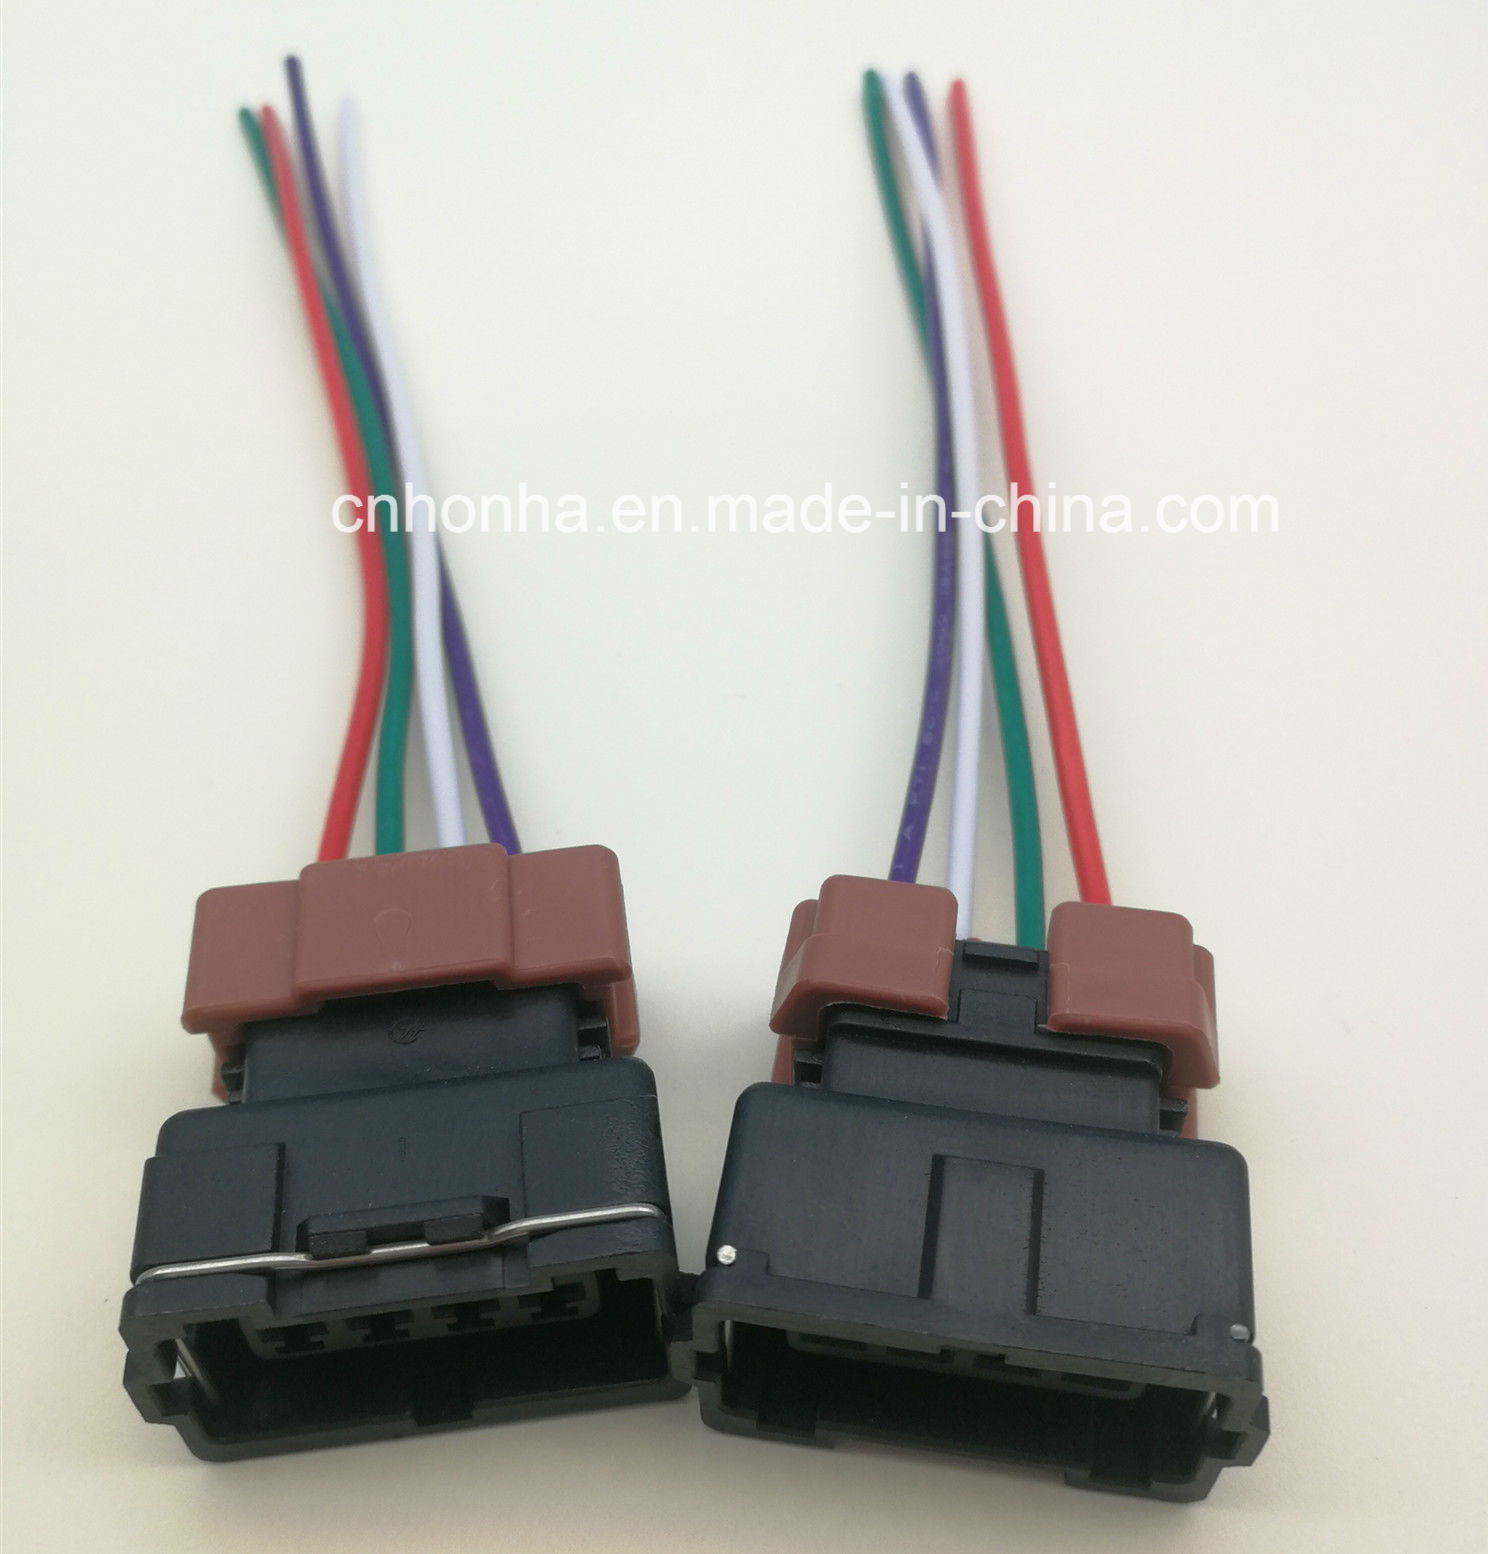 hight resolution of 4 pin female toyota pbt connector wire harness for denso